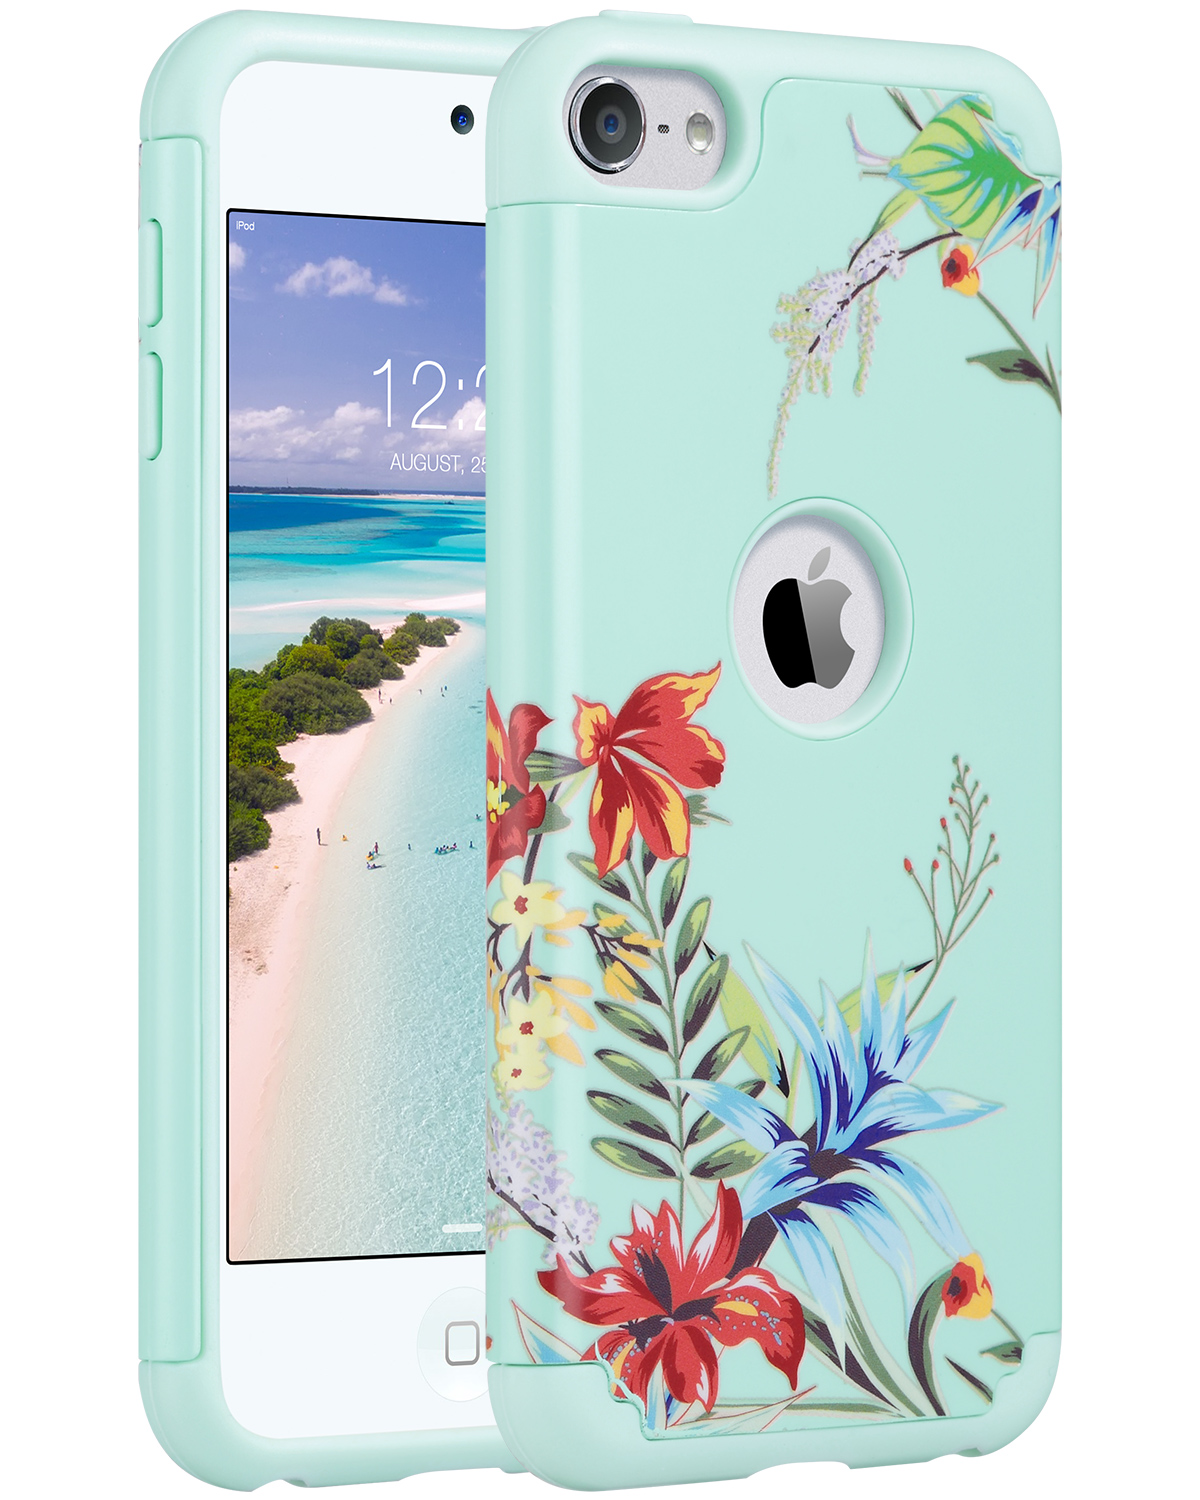 Hybrid-Hard-Protective-Silicon-TPU-Case-for-Apple-iPod-Touch-5-6th-Generation thumbnail 56